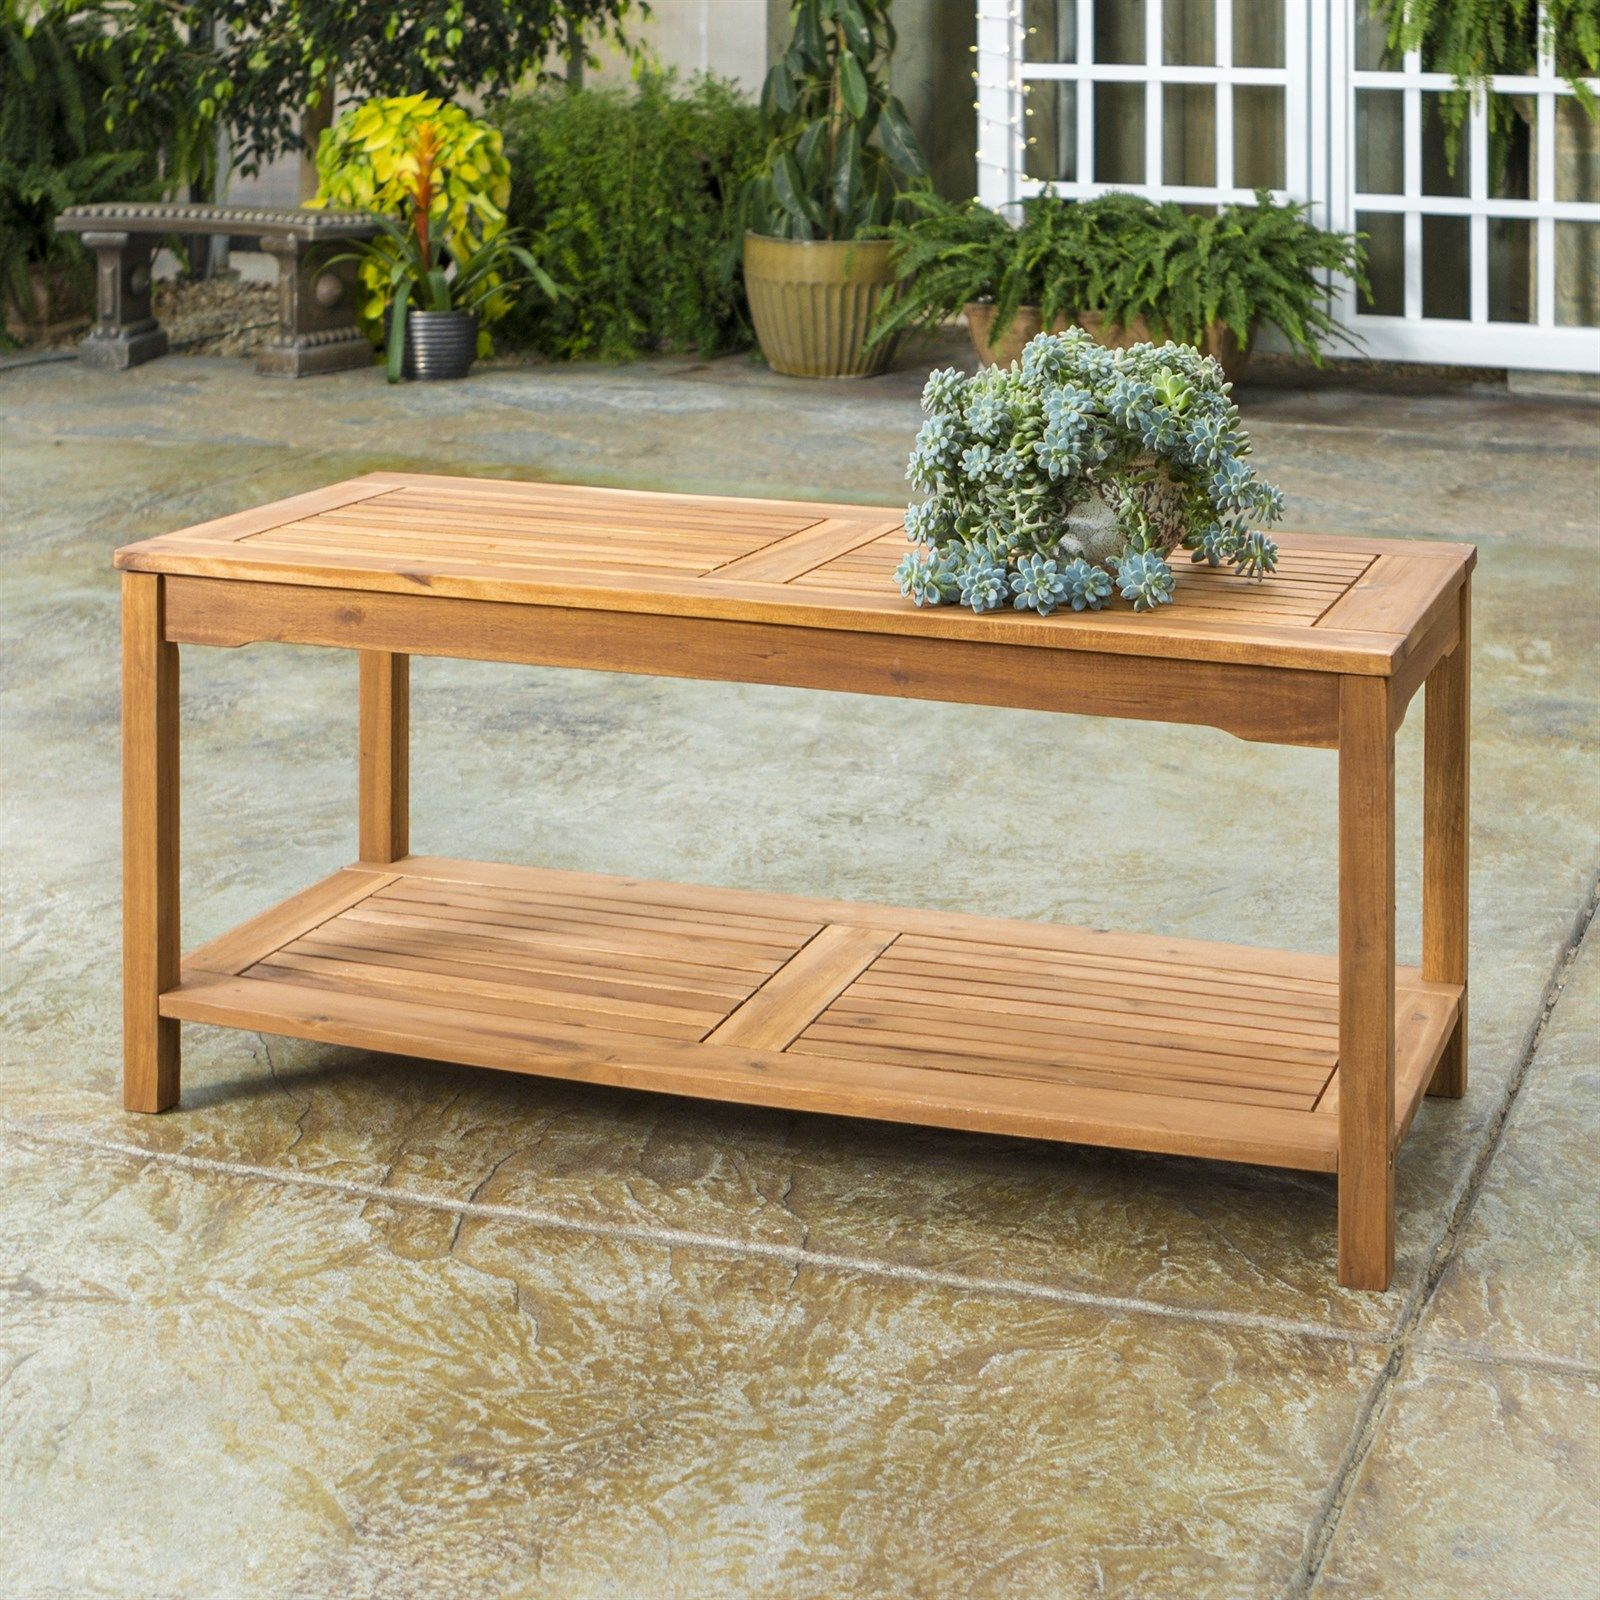 Acacia Wood Outdoor Patio Coffee Table In 2020 Wood Patio Solid